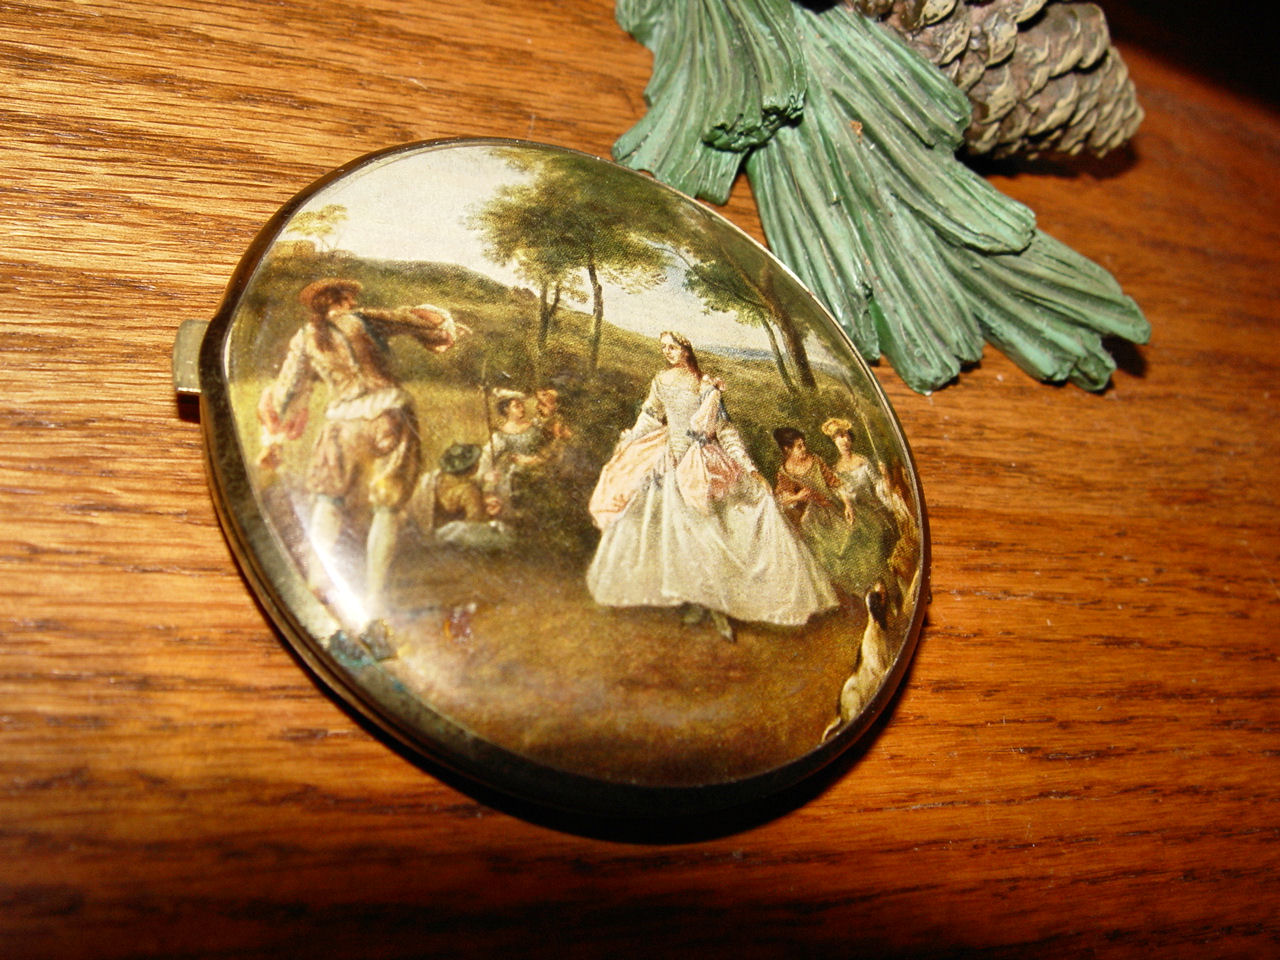 Vintage                                         mirror compact w/ French scene ~                                         1950s - 60's celluloid plastic